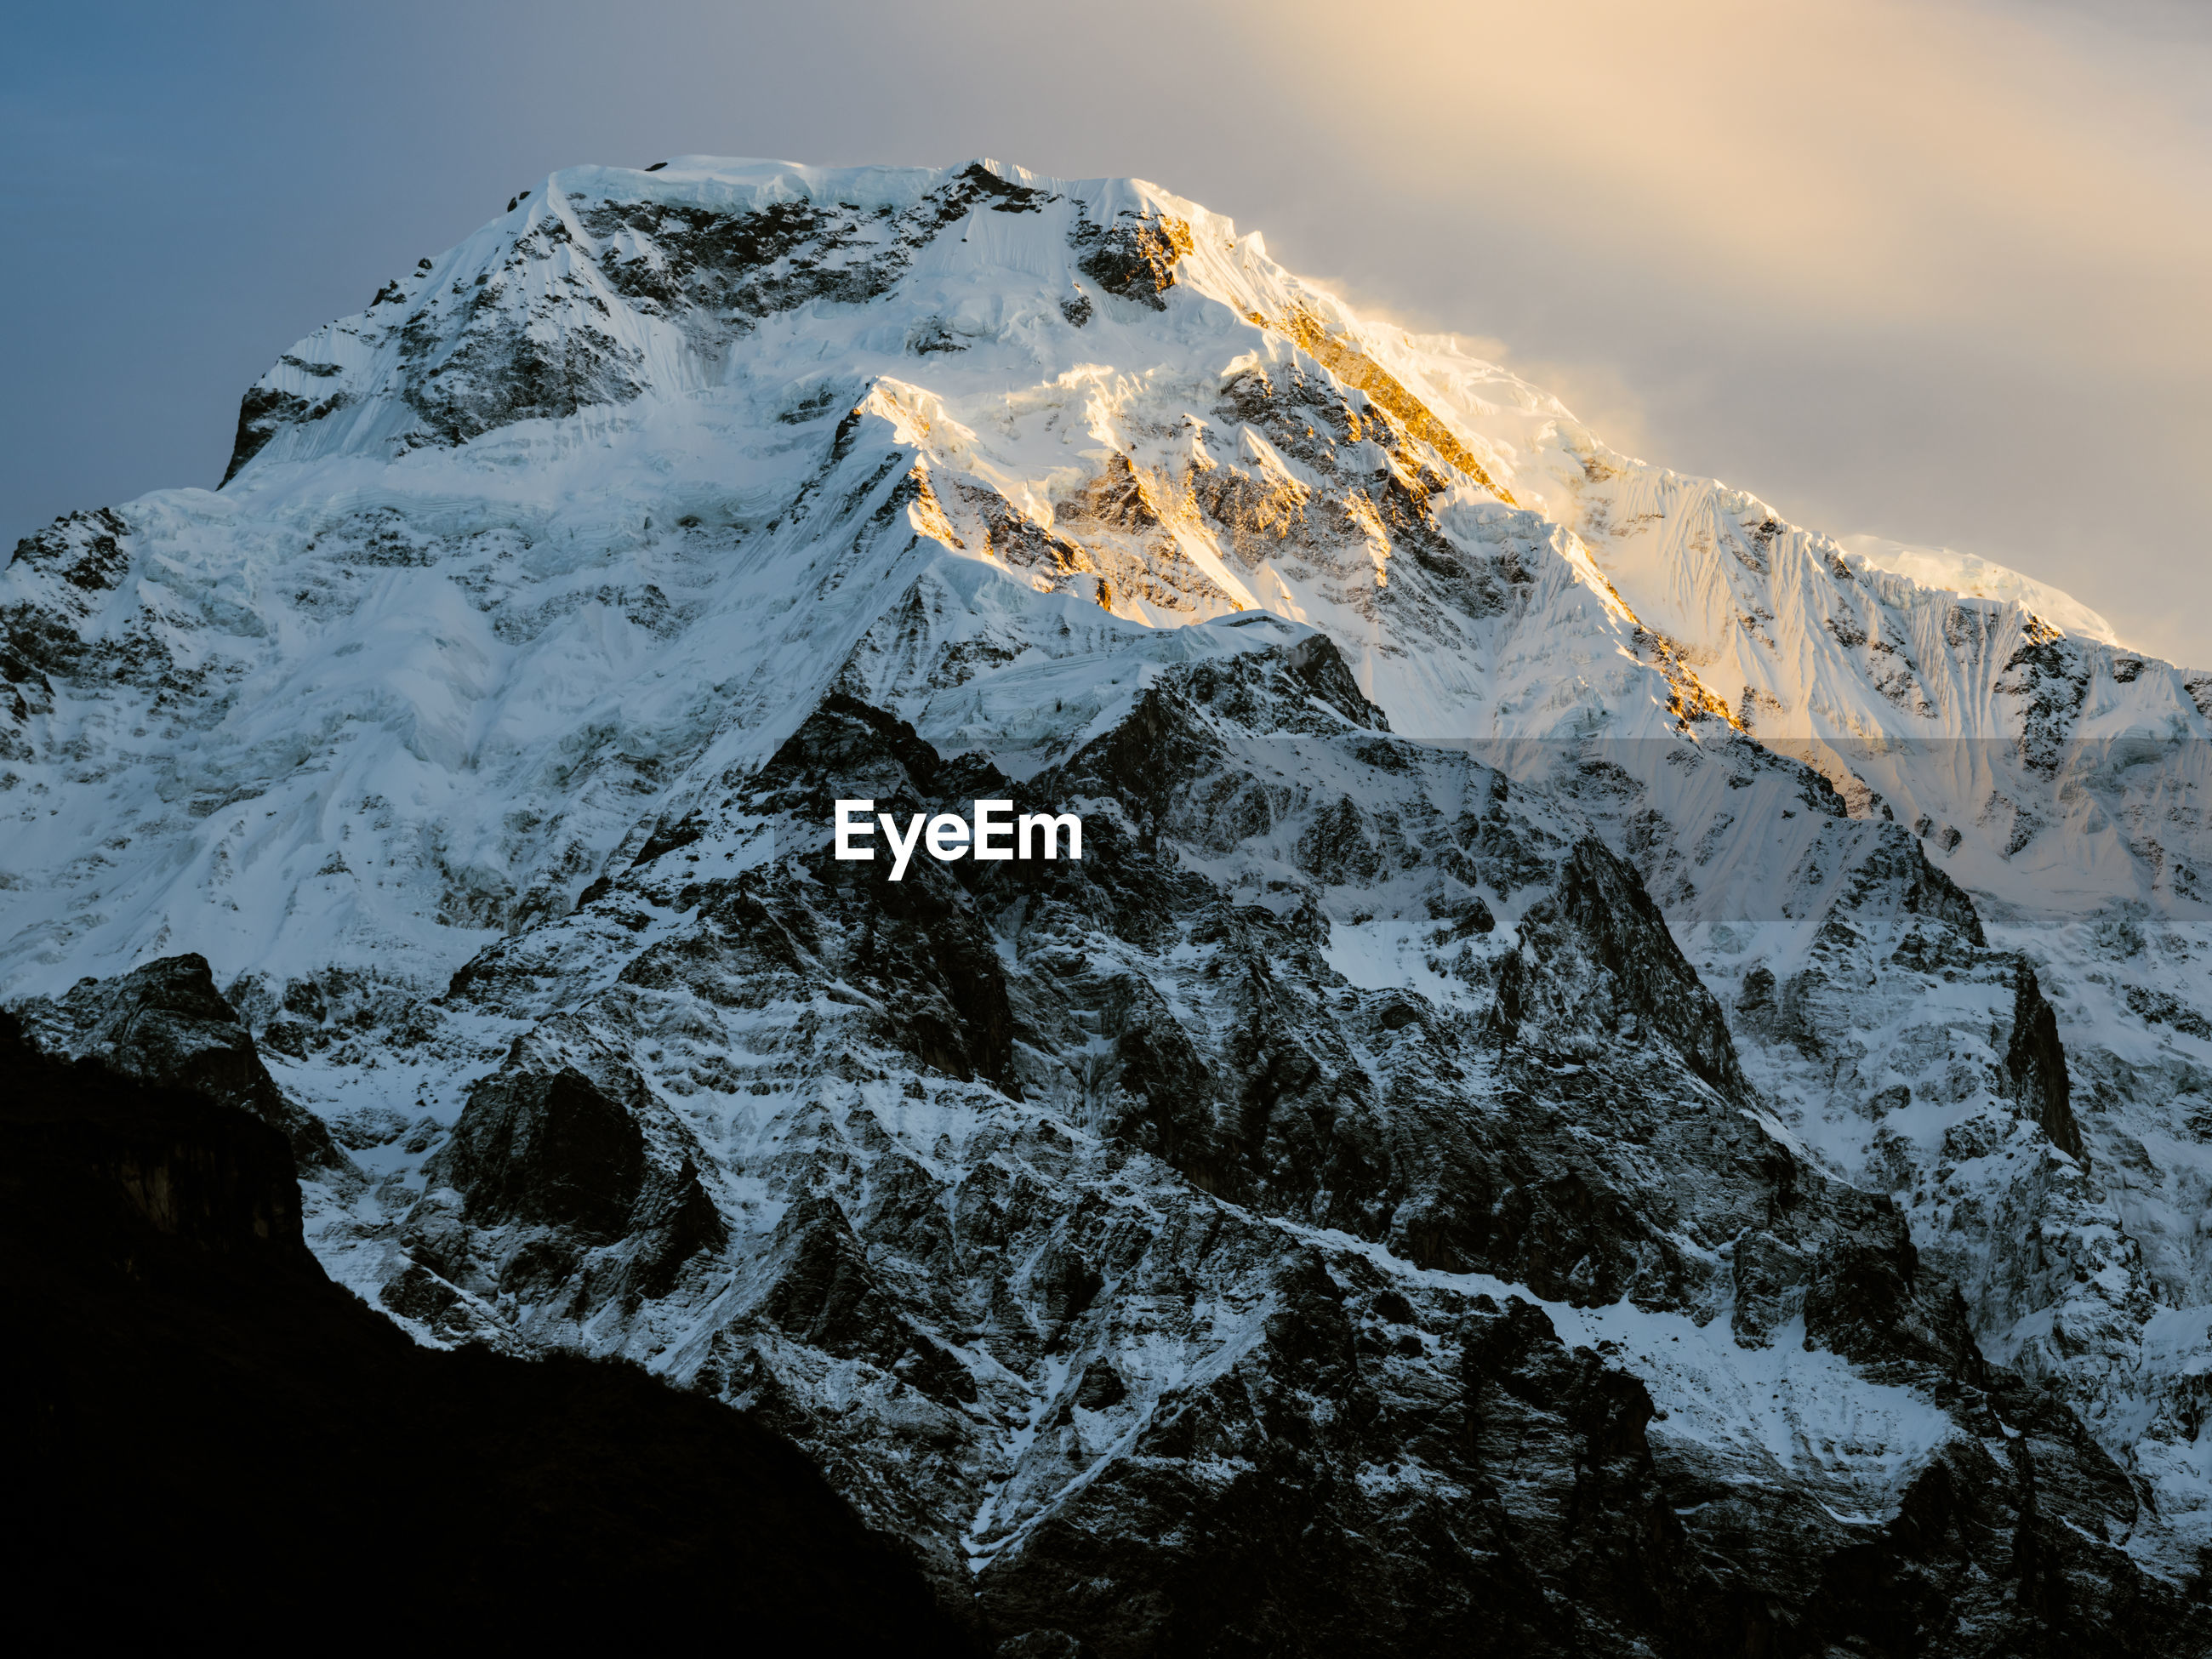 Annapurna south at sunrise, in the himalayan mountains of nepal.